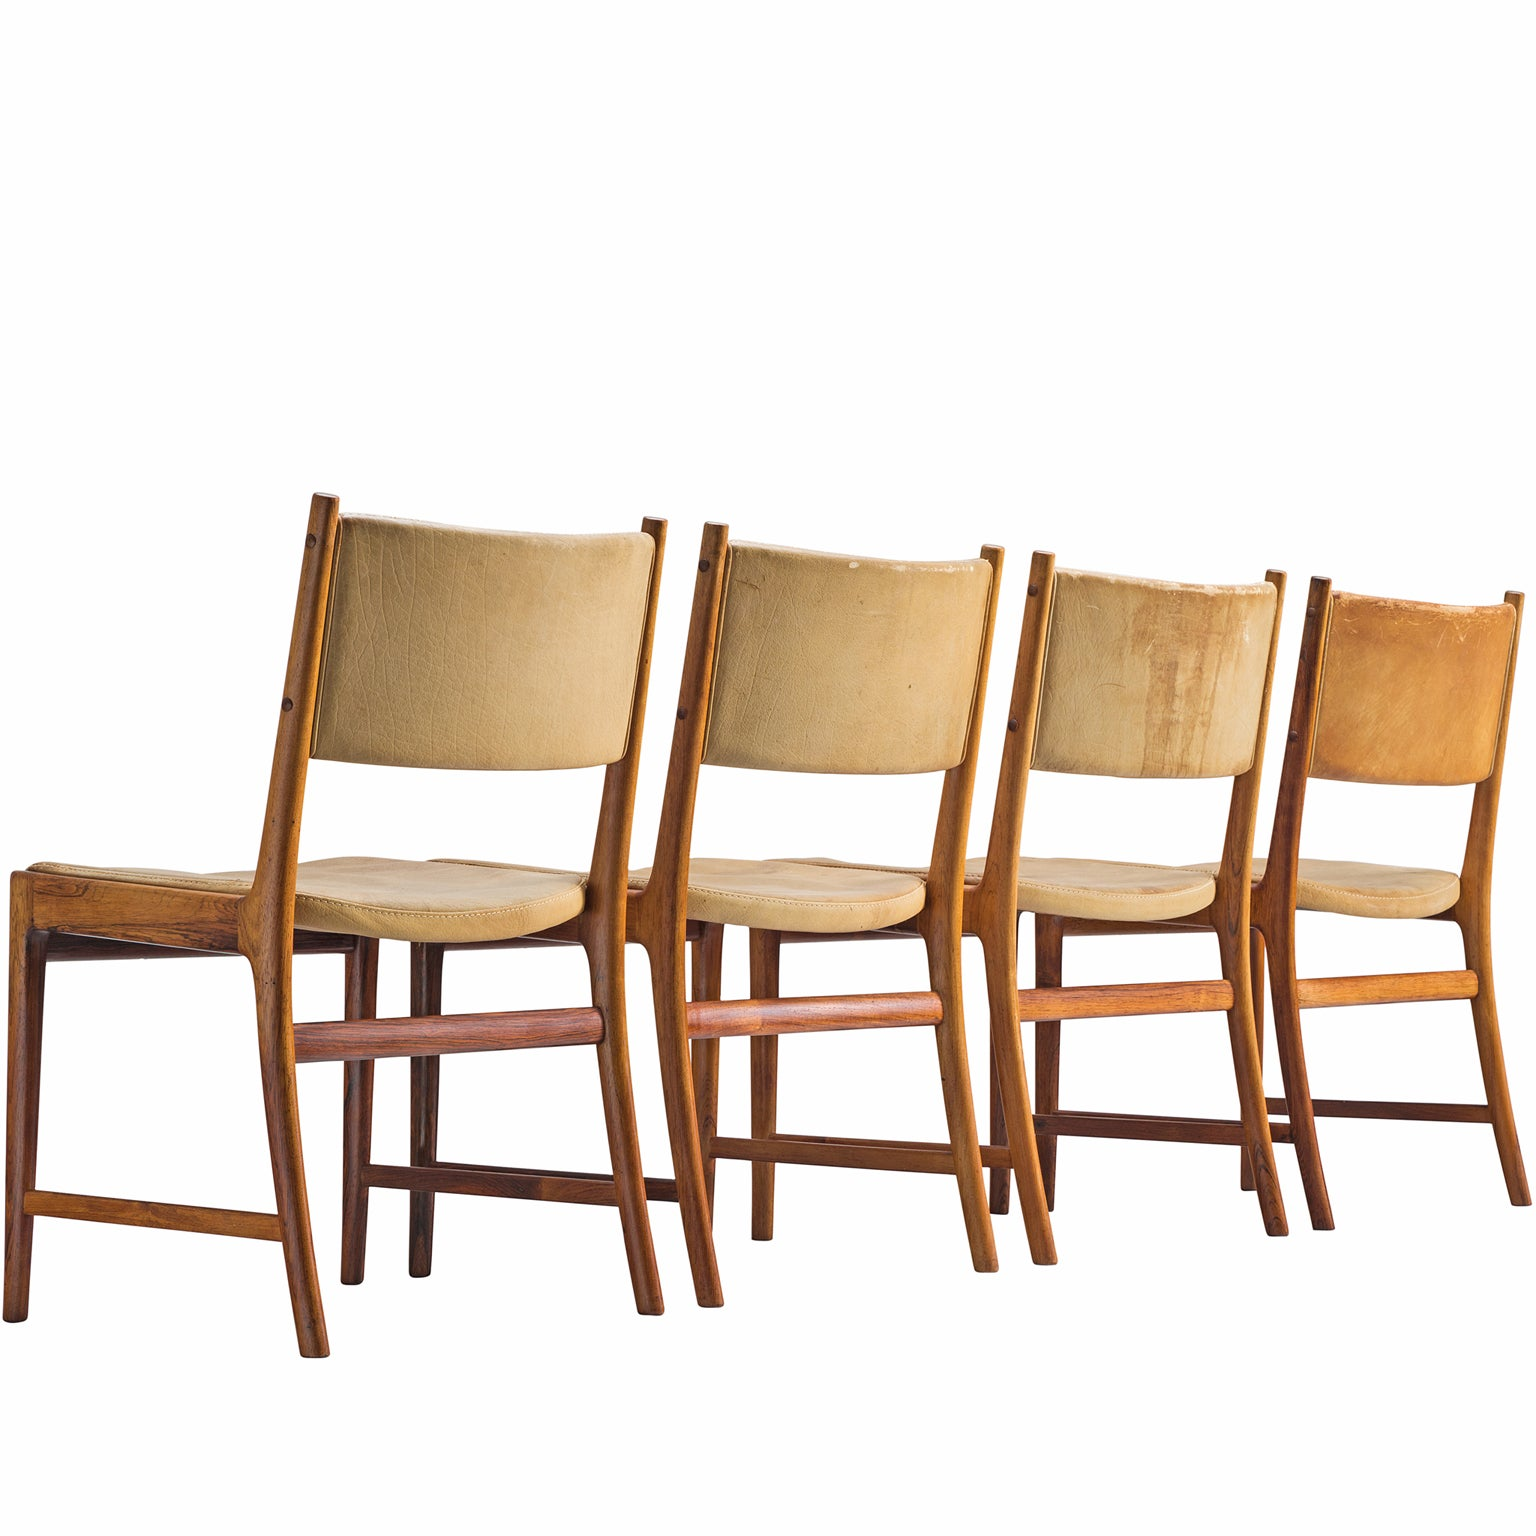 Kai Lyngfeldt Larsen Set of Four Dining Chairs, Denmark, 1960s